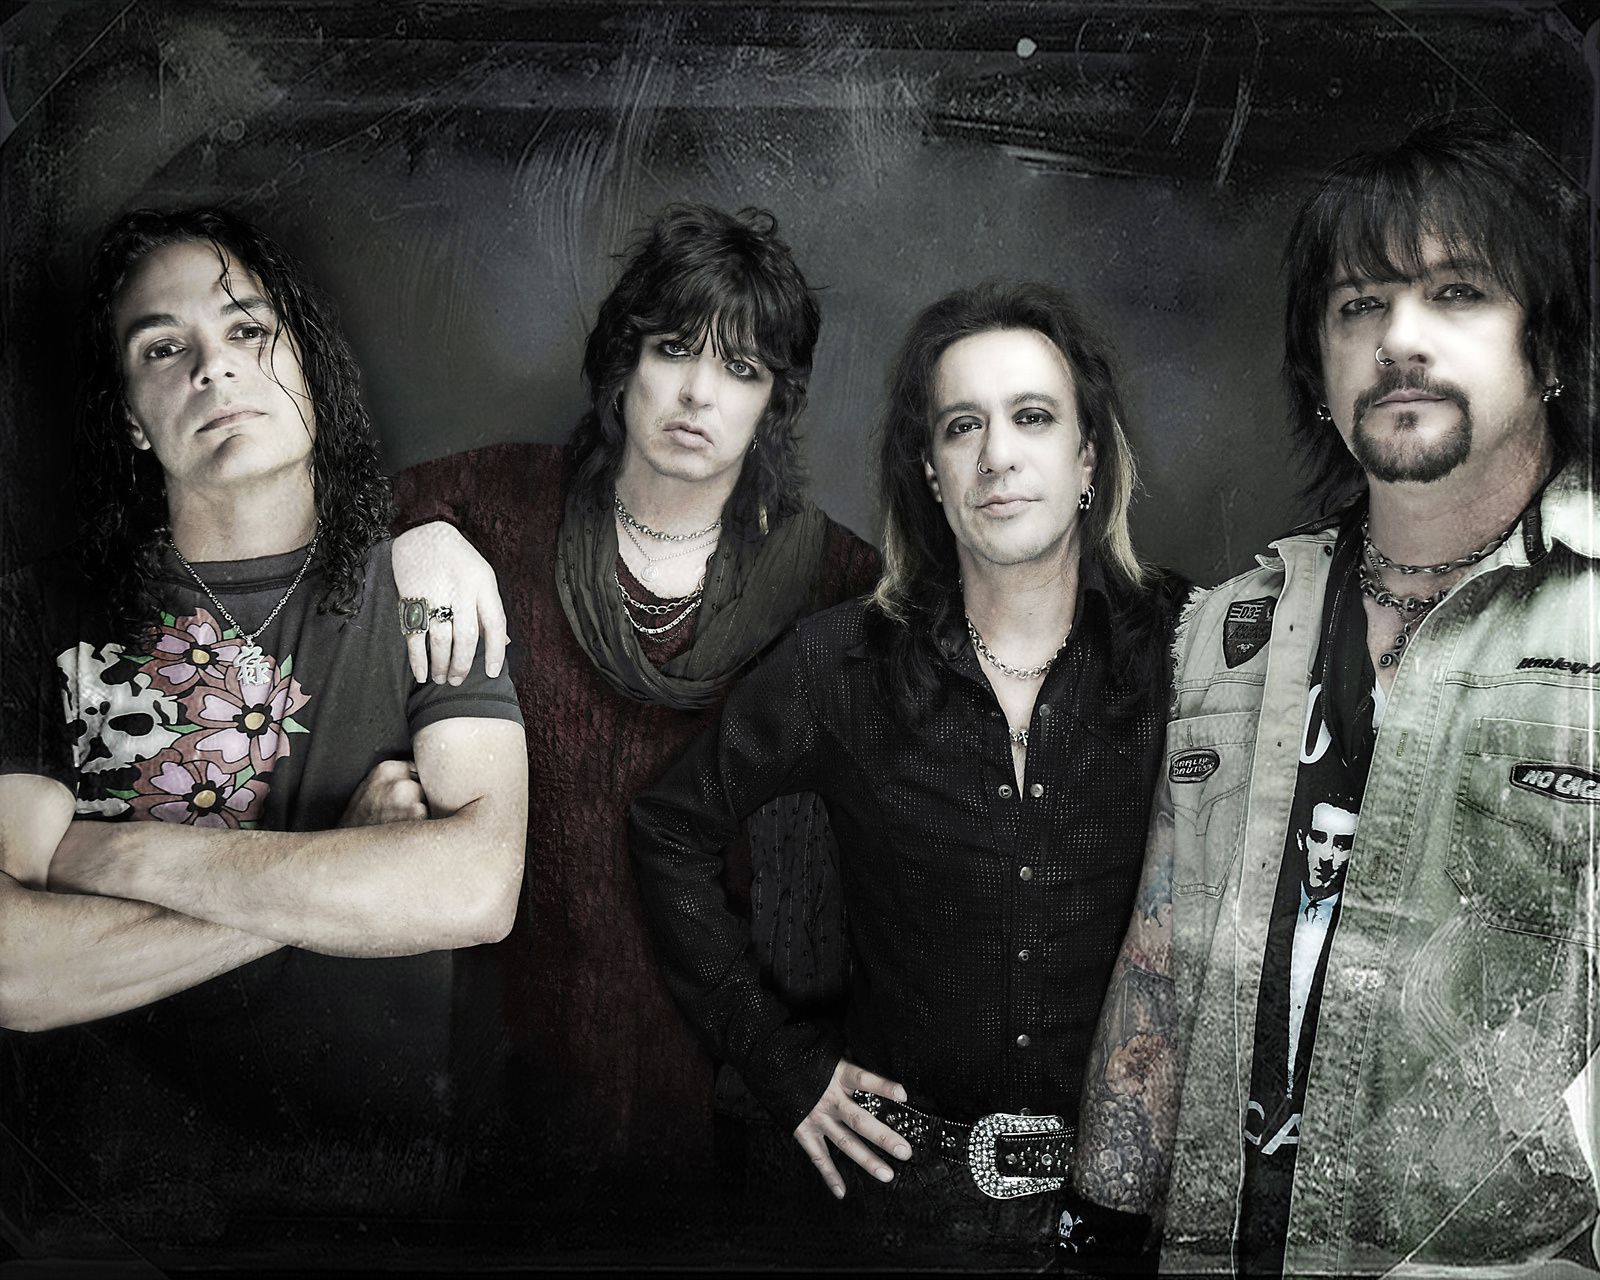 Tom Keifer, Cinderella (2010)